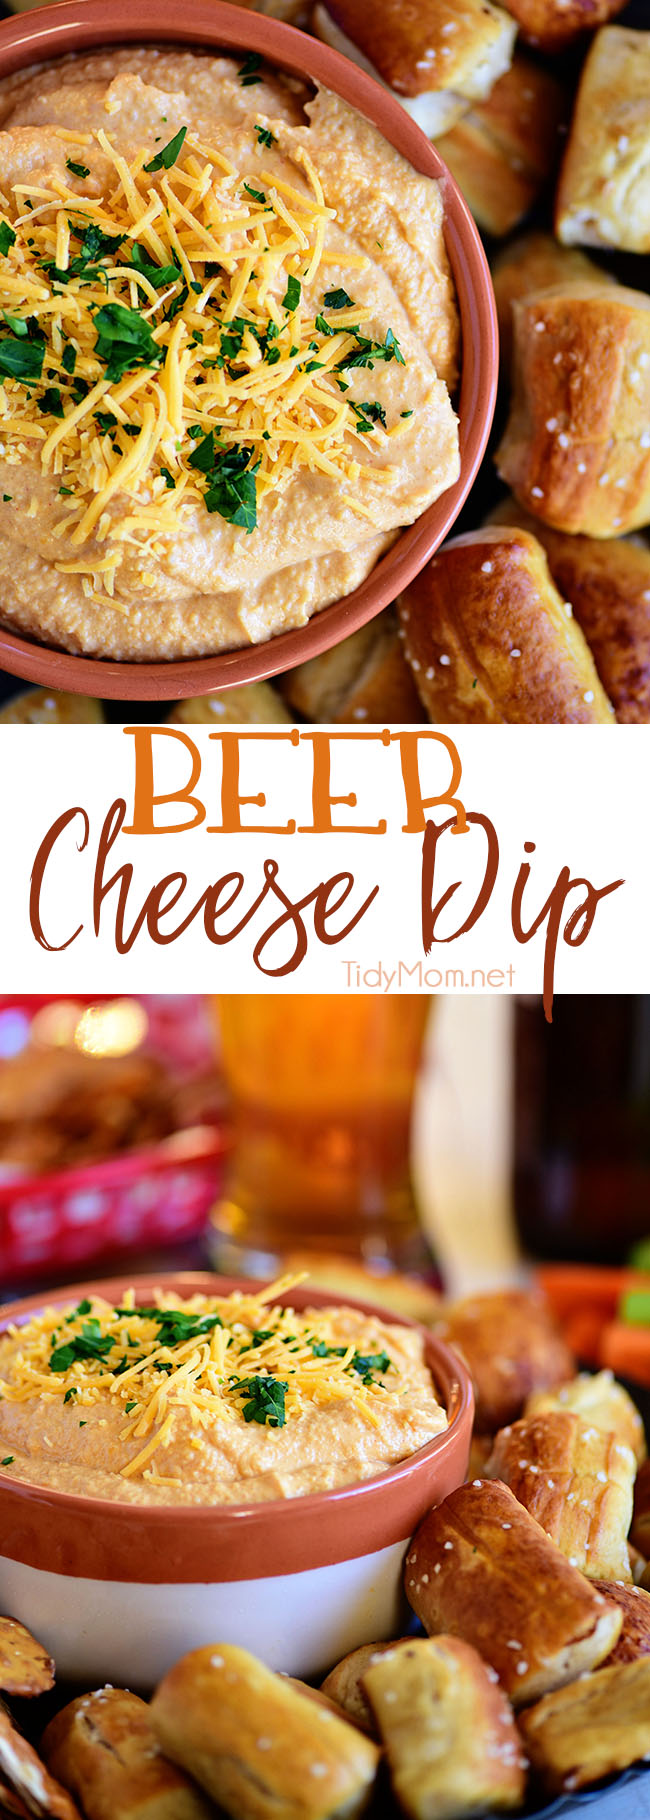 Pub-style Beer Cheese Dip.  Serve warm or cold, everyone will love this dip.  Print the full recipe recipe at TidyMom.net #cheesedip #beercheese #beer #appetizer